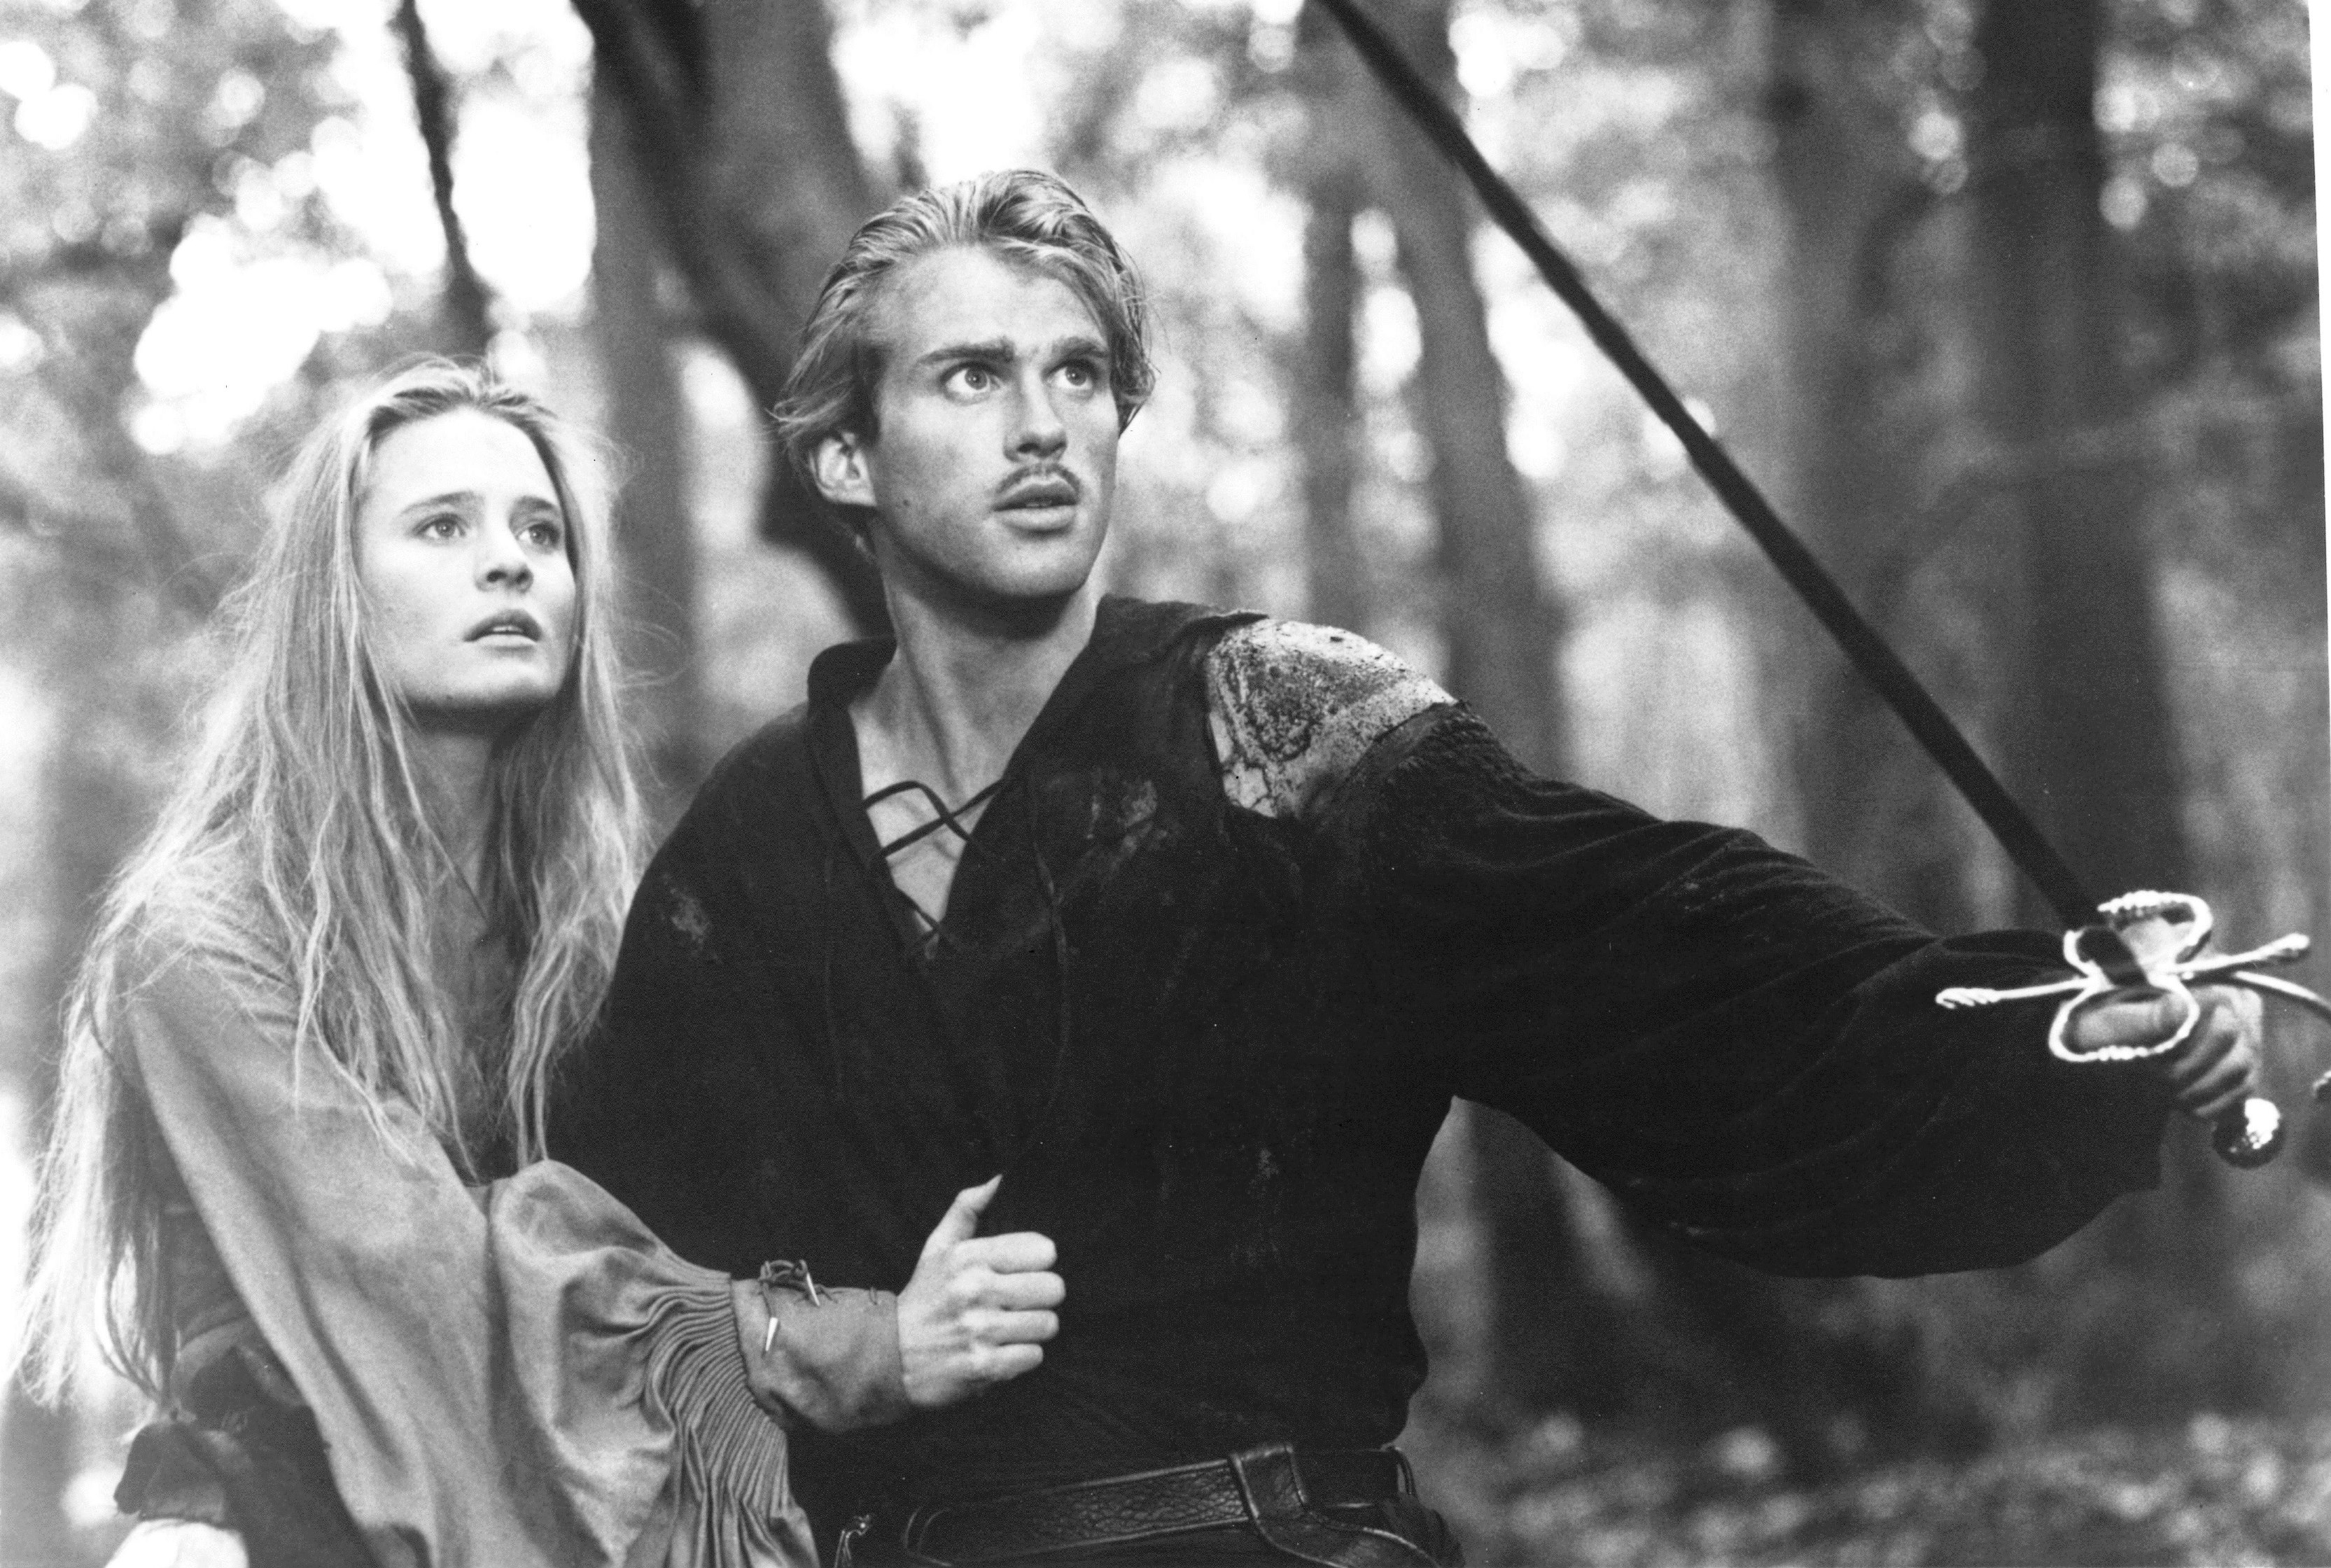 Westley (Cary Elwes) defends Princess Buttercup (Robin Wright) from Prince Humperdink's henchman in  The Princess Bride.